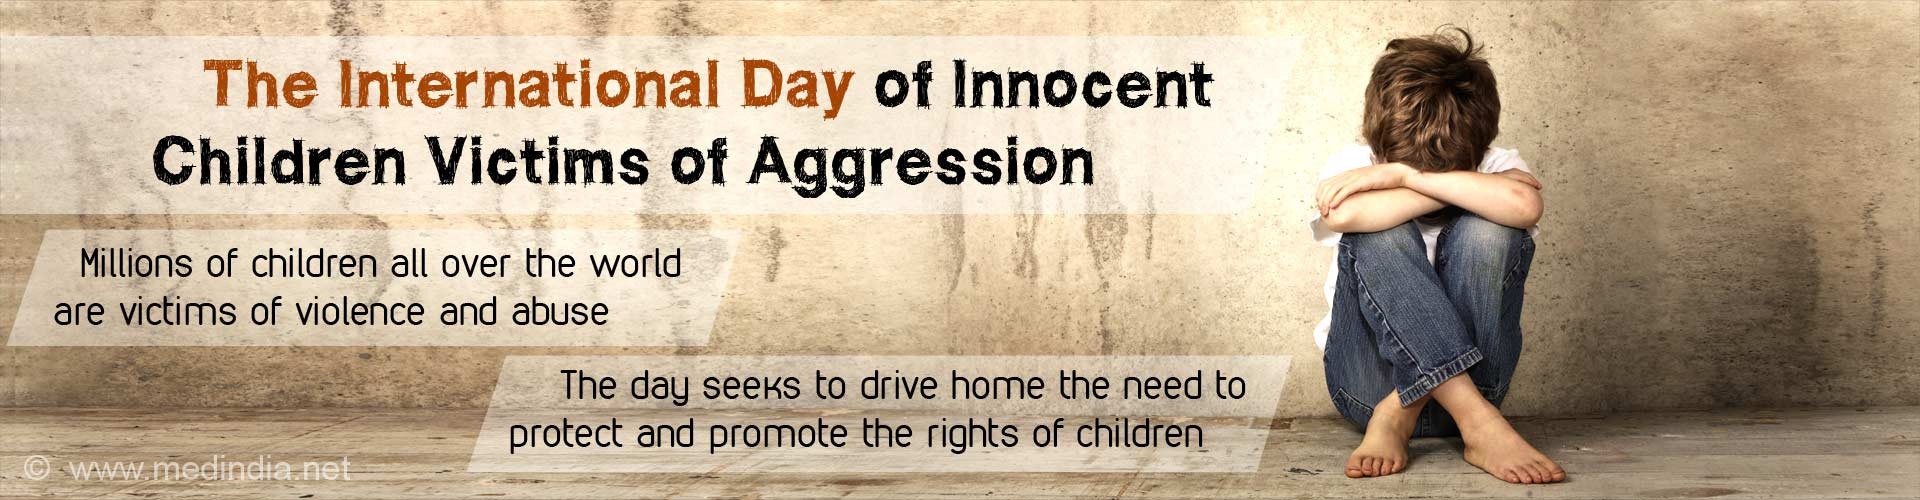 International Day of Innocent Children Victims of Aggression 2017